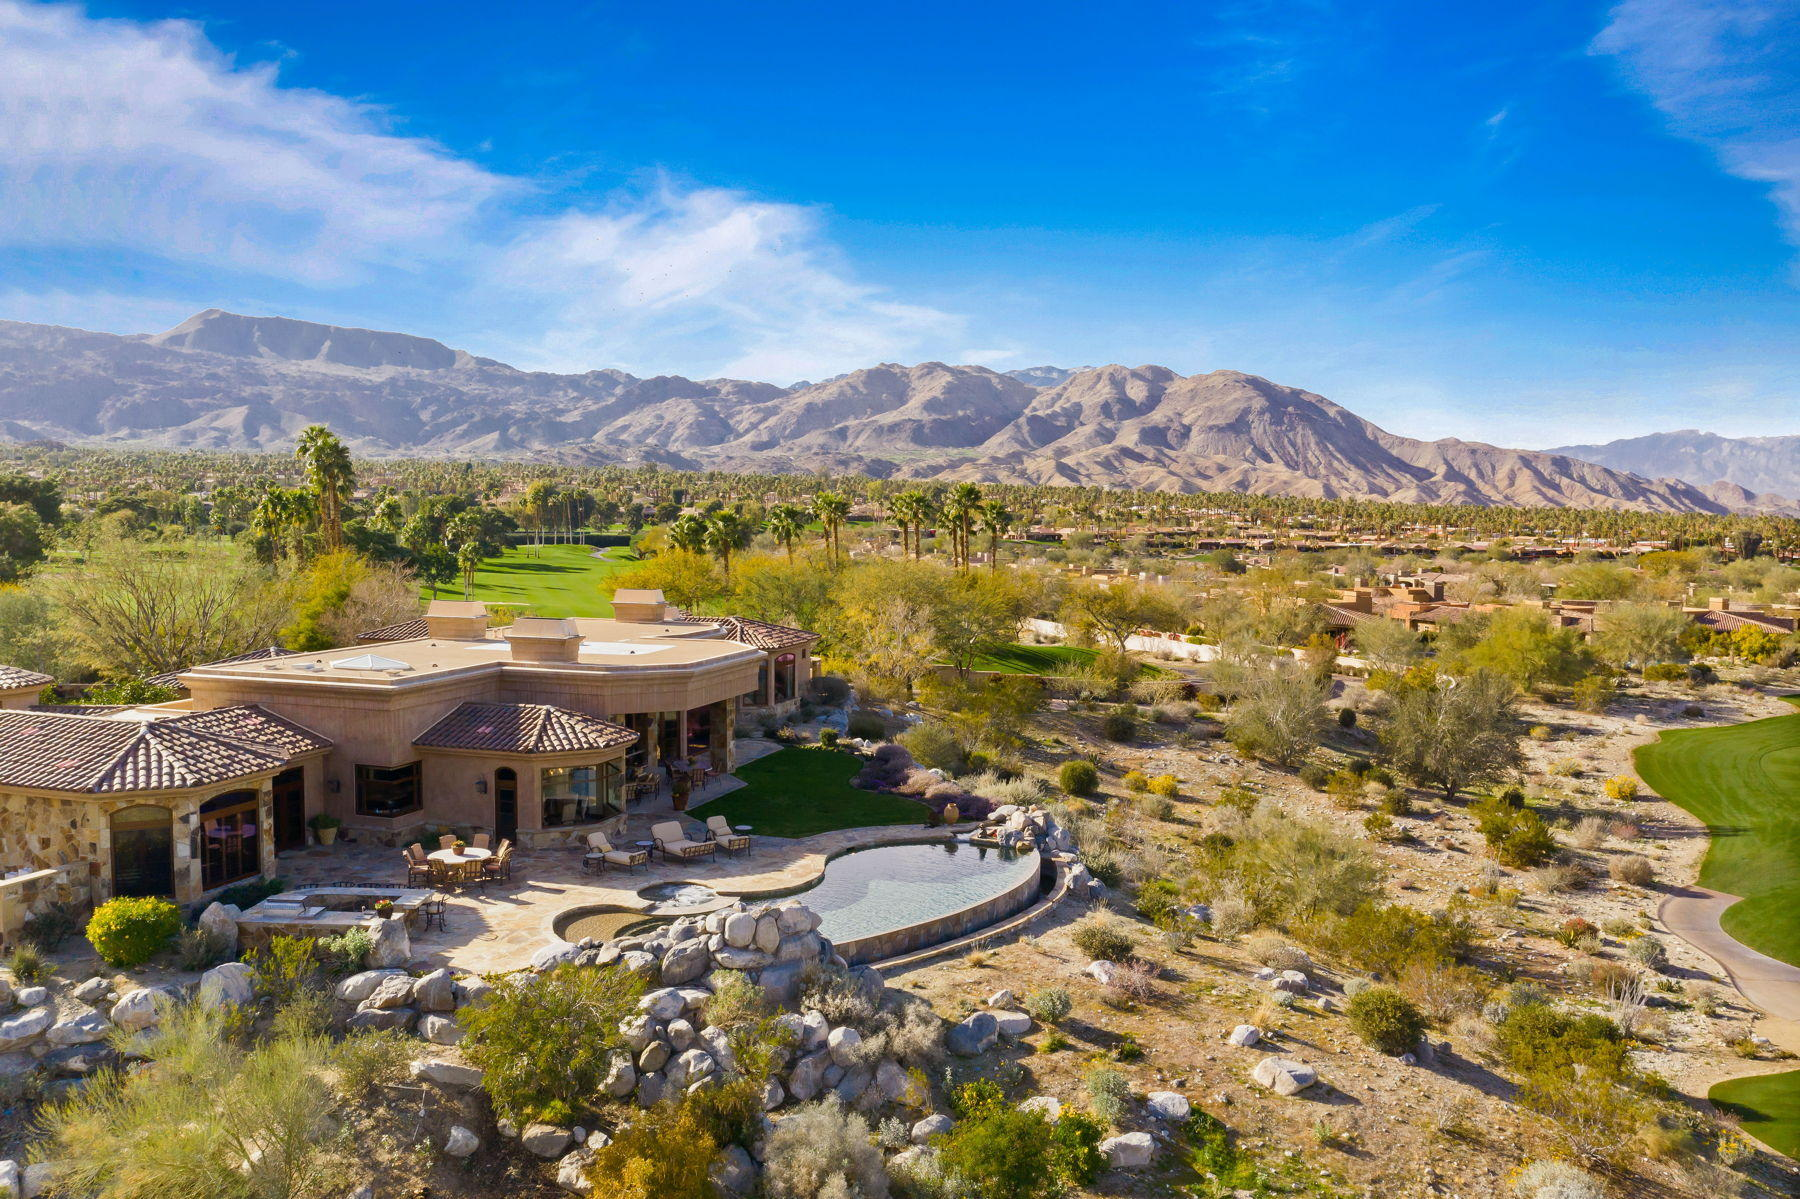 73980 Desert Bloom Trail, Indian Wells, California 92210, 4 Bedrooms Bedrooms, ,6 BathroomsBathrooms,Residential,For Sale,73980 Desert Bloom Trail,219038609